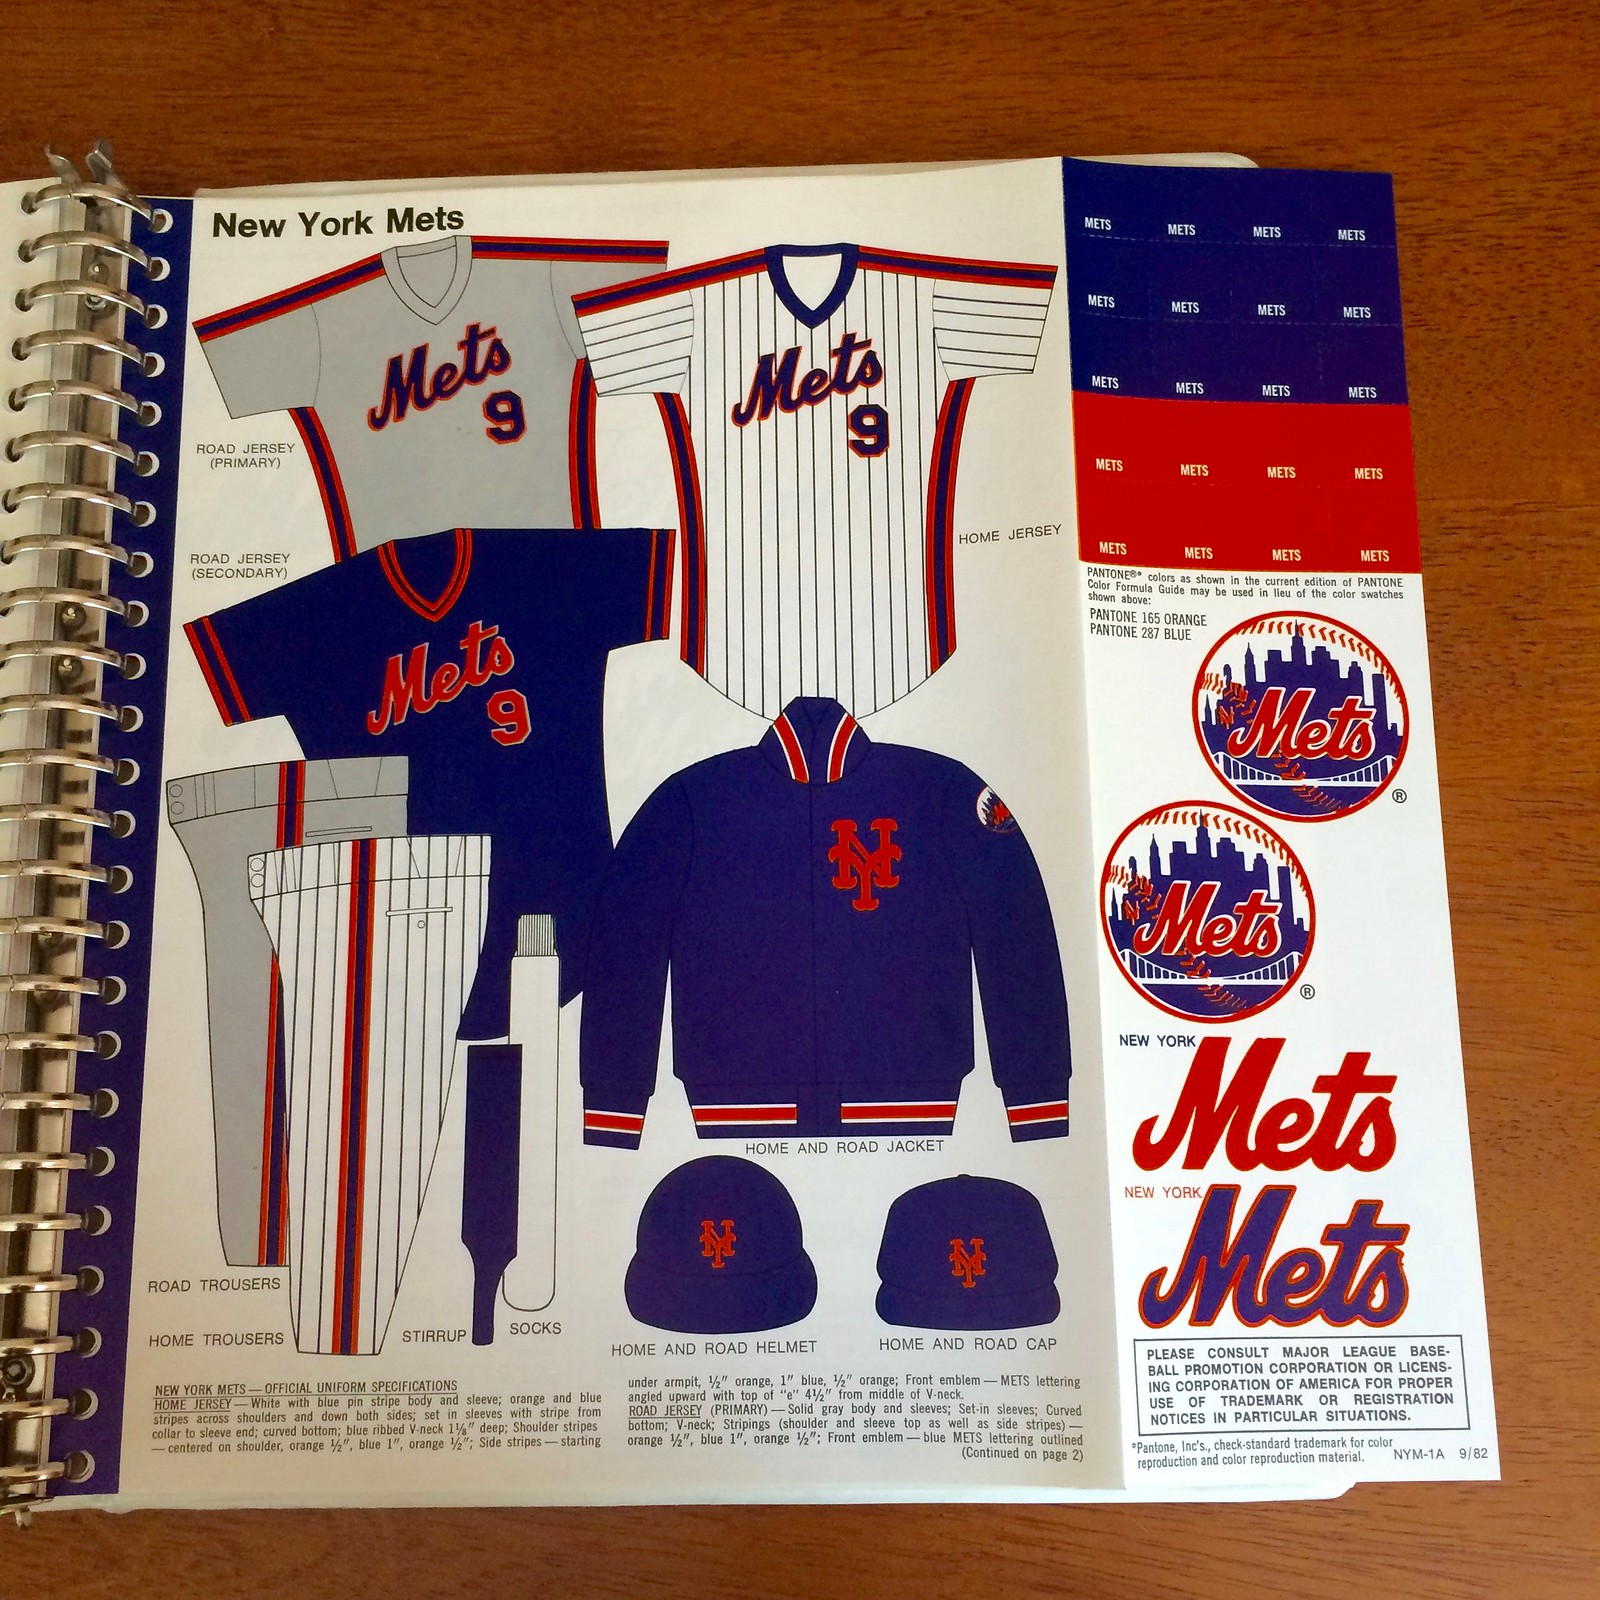 2351f1ff9 The style guide shows yet another variation — a blue road jersey with  orange/grey typography and orange/blue trim on the sleeves and collar: